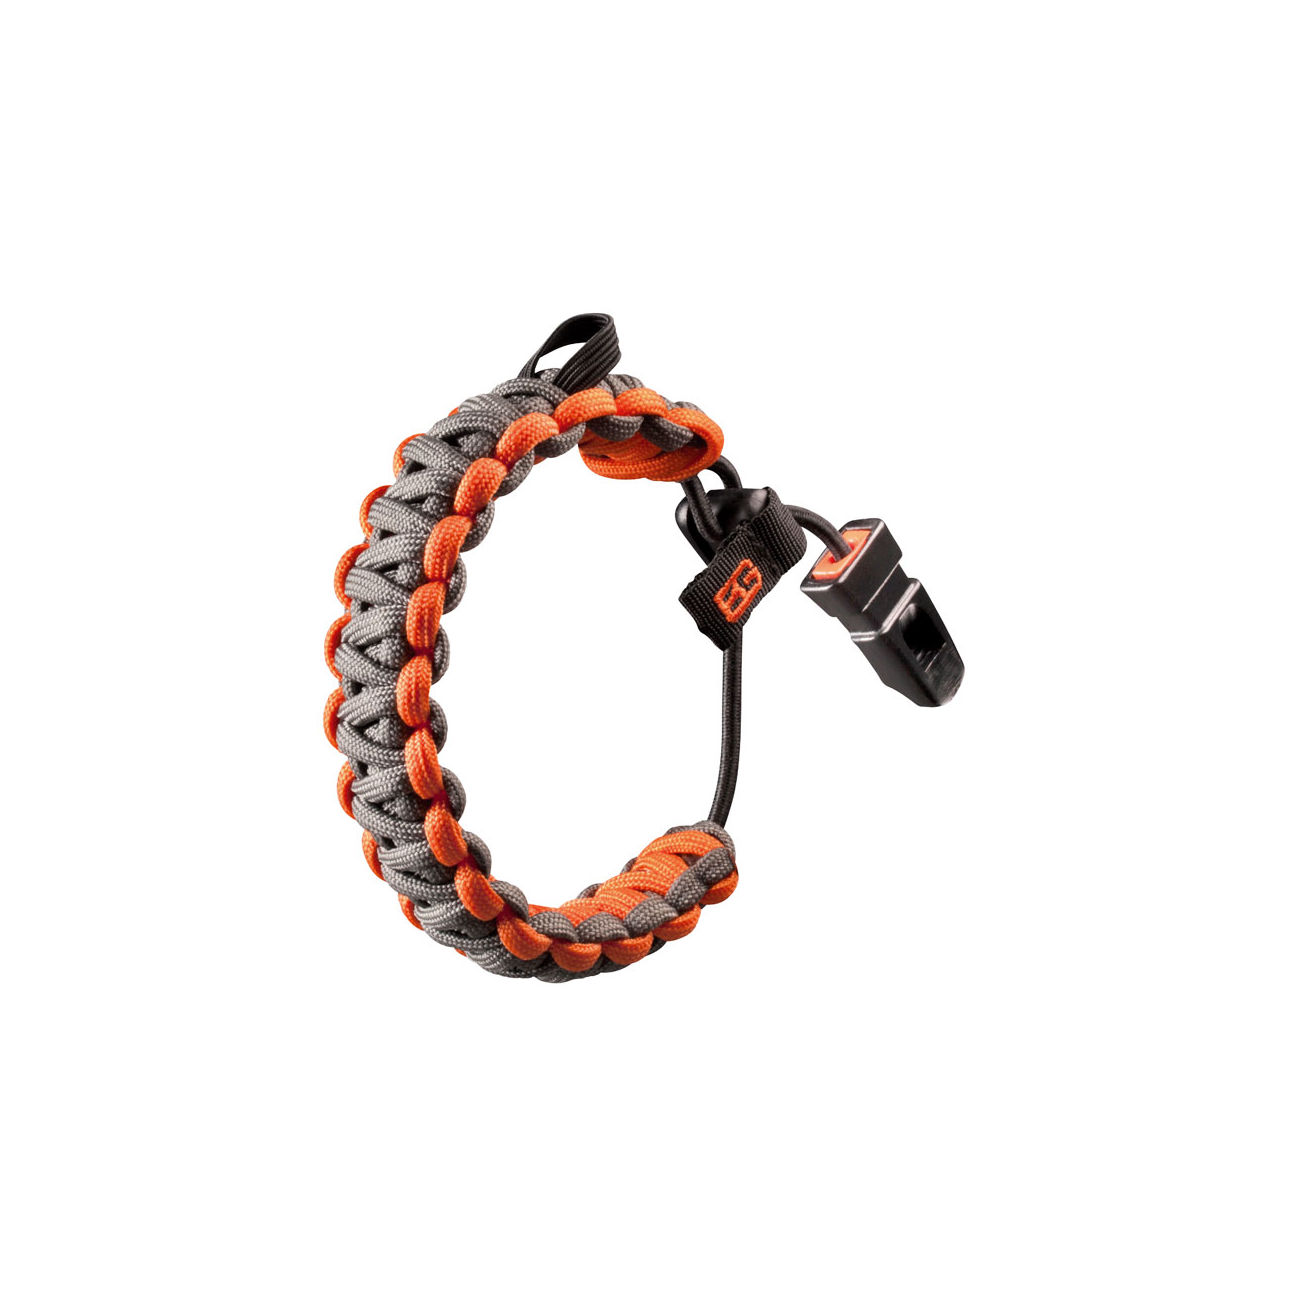 Bear Grylls Paracord Survival Armband Bracelet orange silber 0